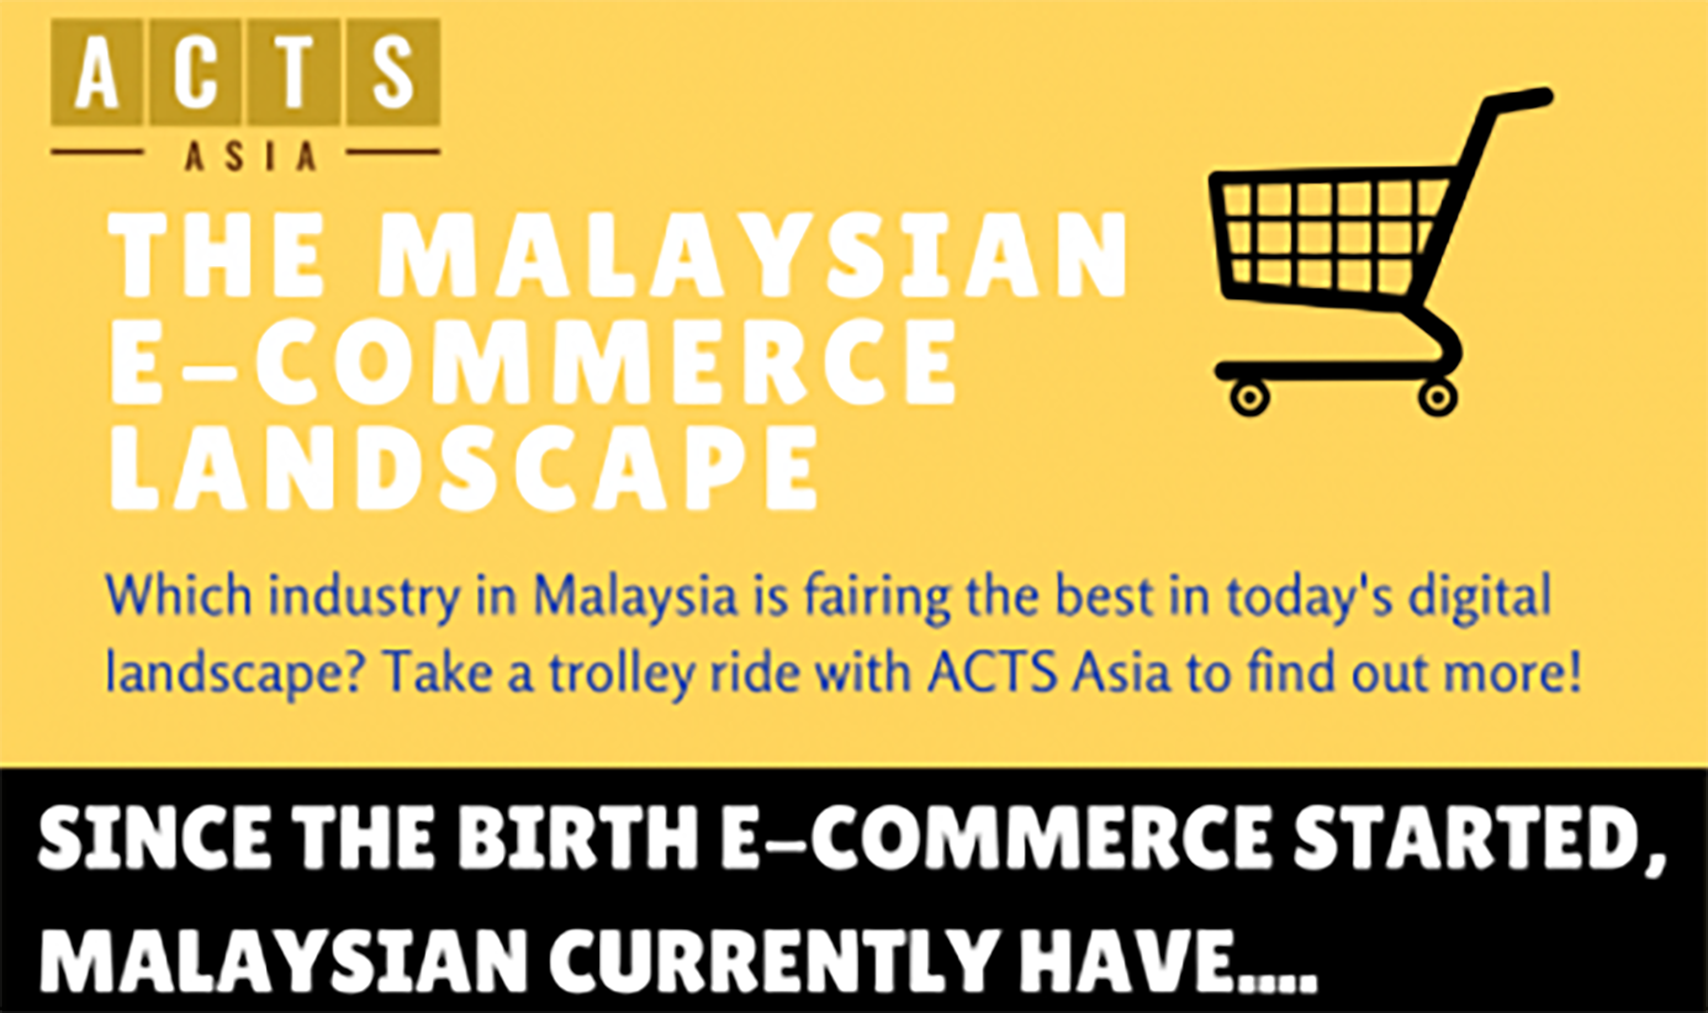 Do Malaysian businesses need Digital Marketing? The Malaysian E-Commerce Landscape: A study